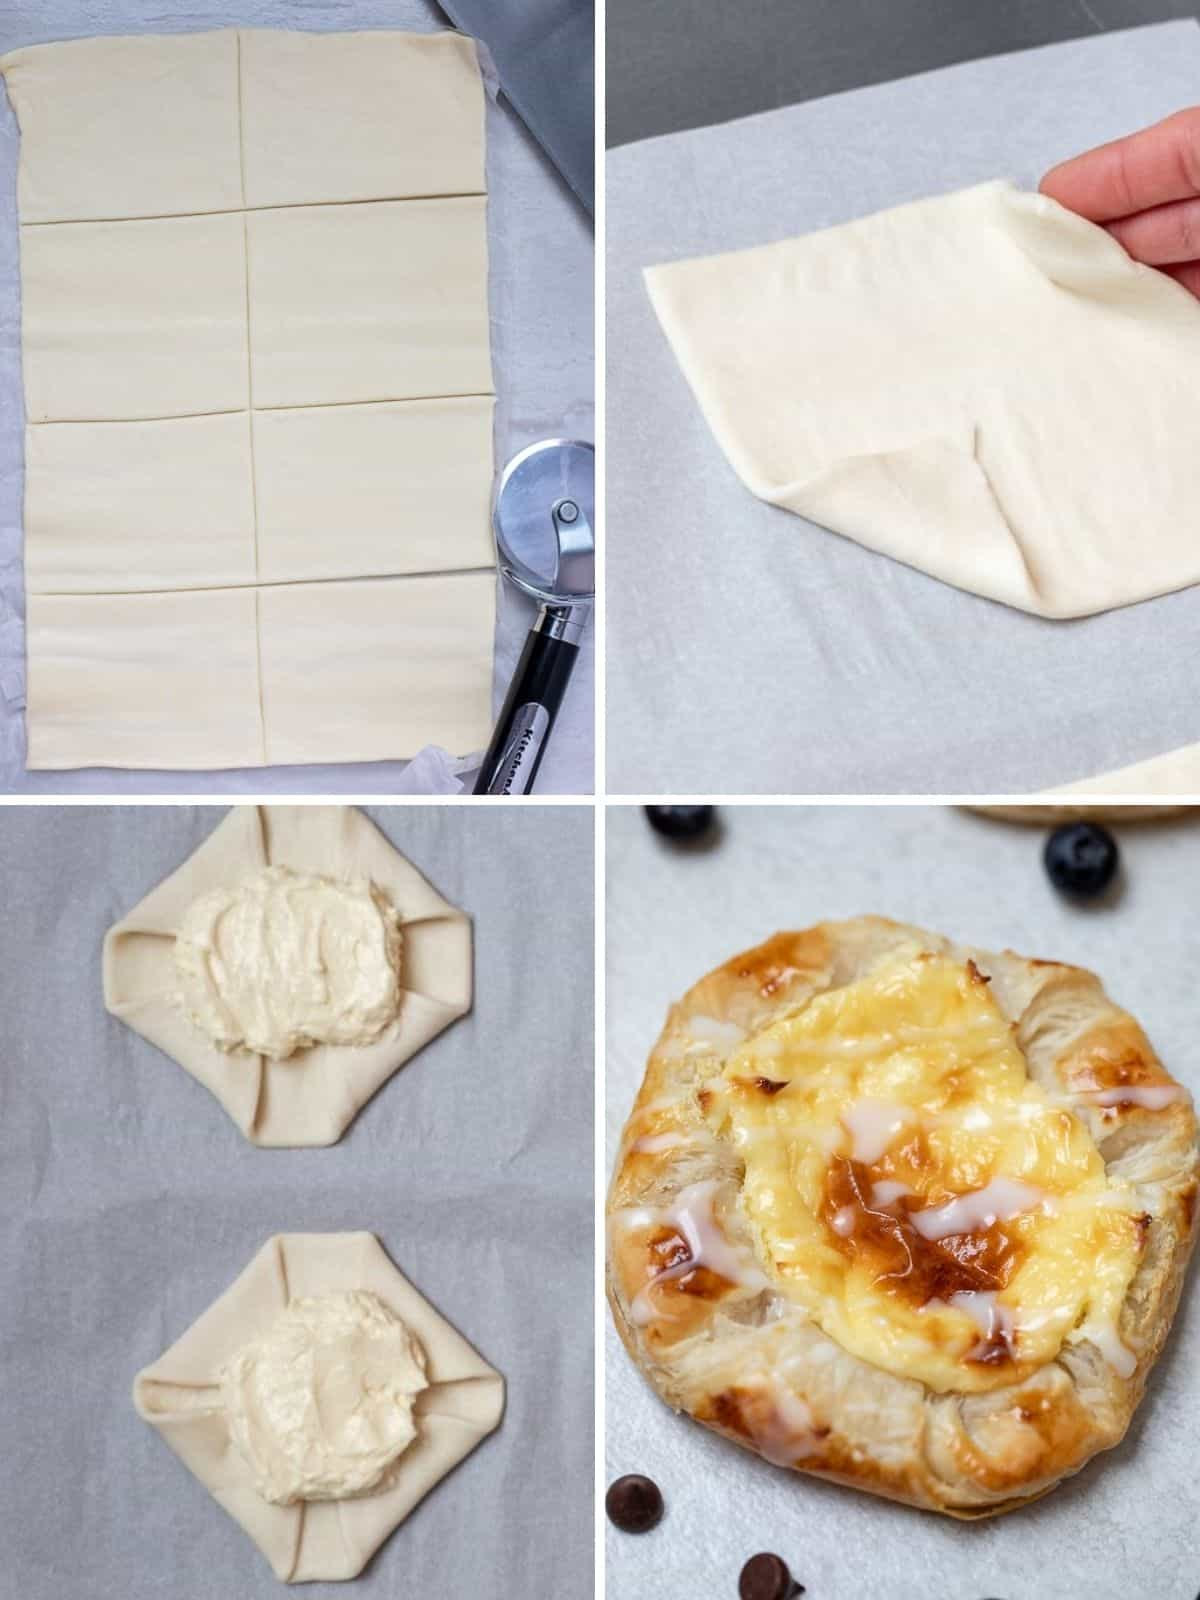 4 step by step photos showing how to prepare a mini danish.